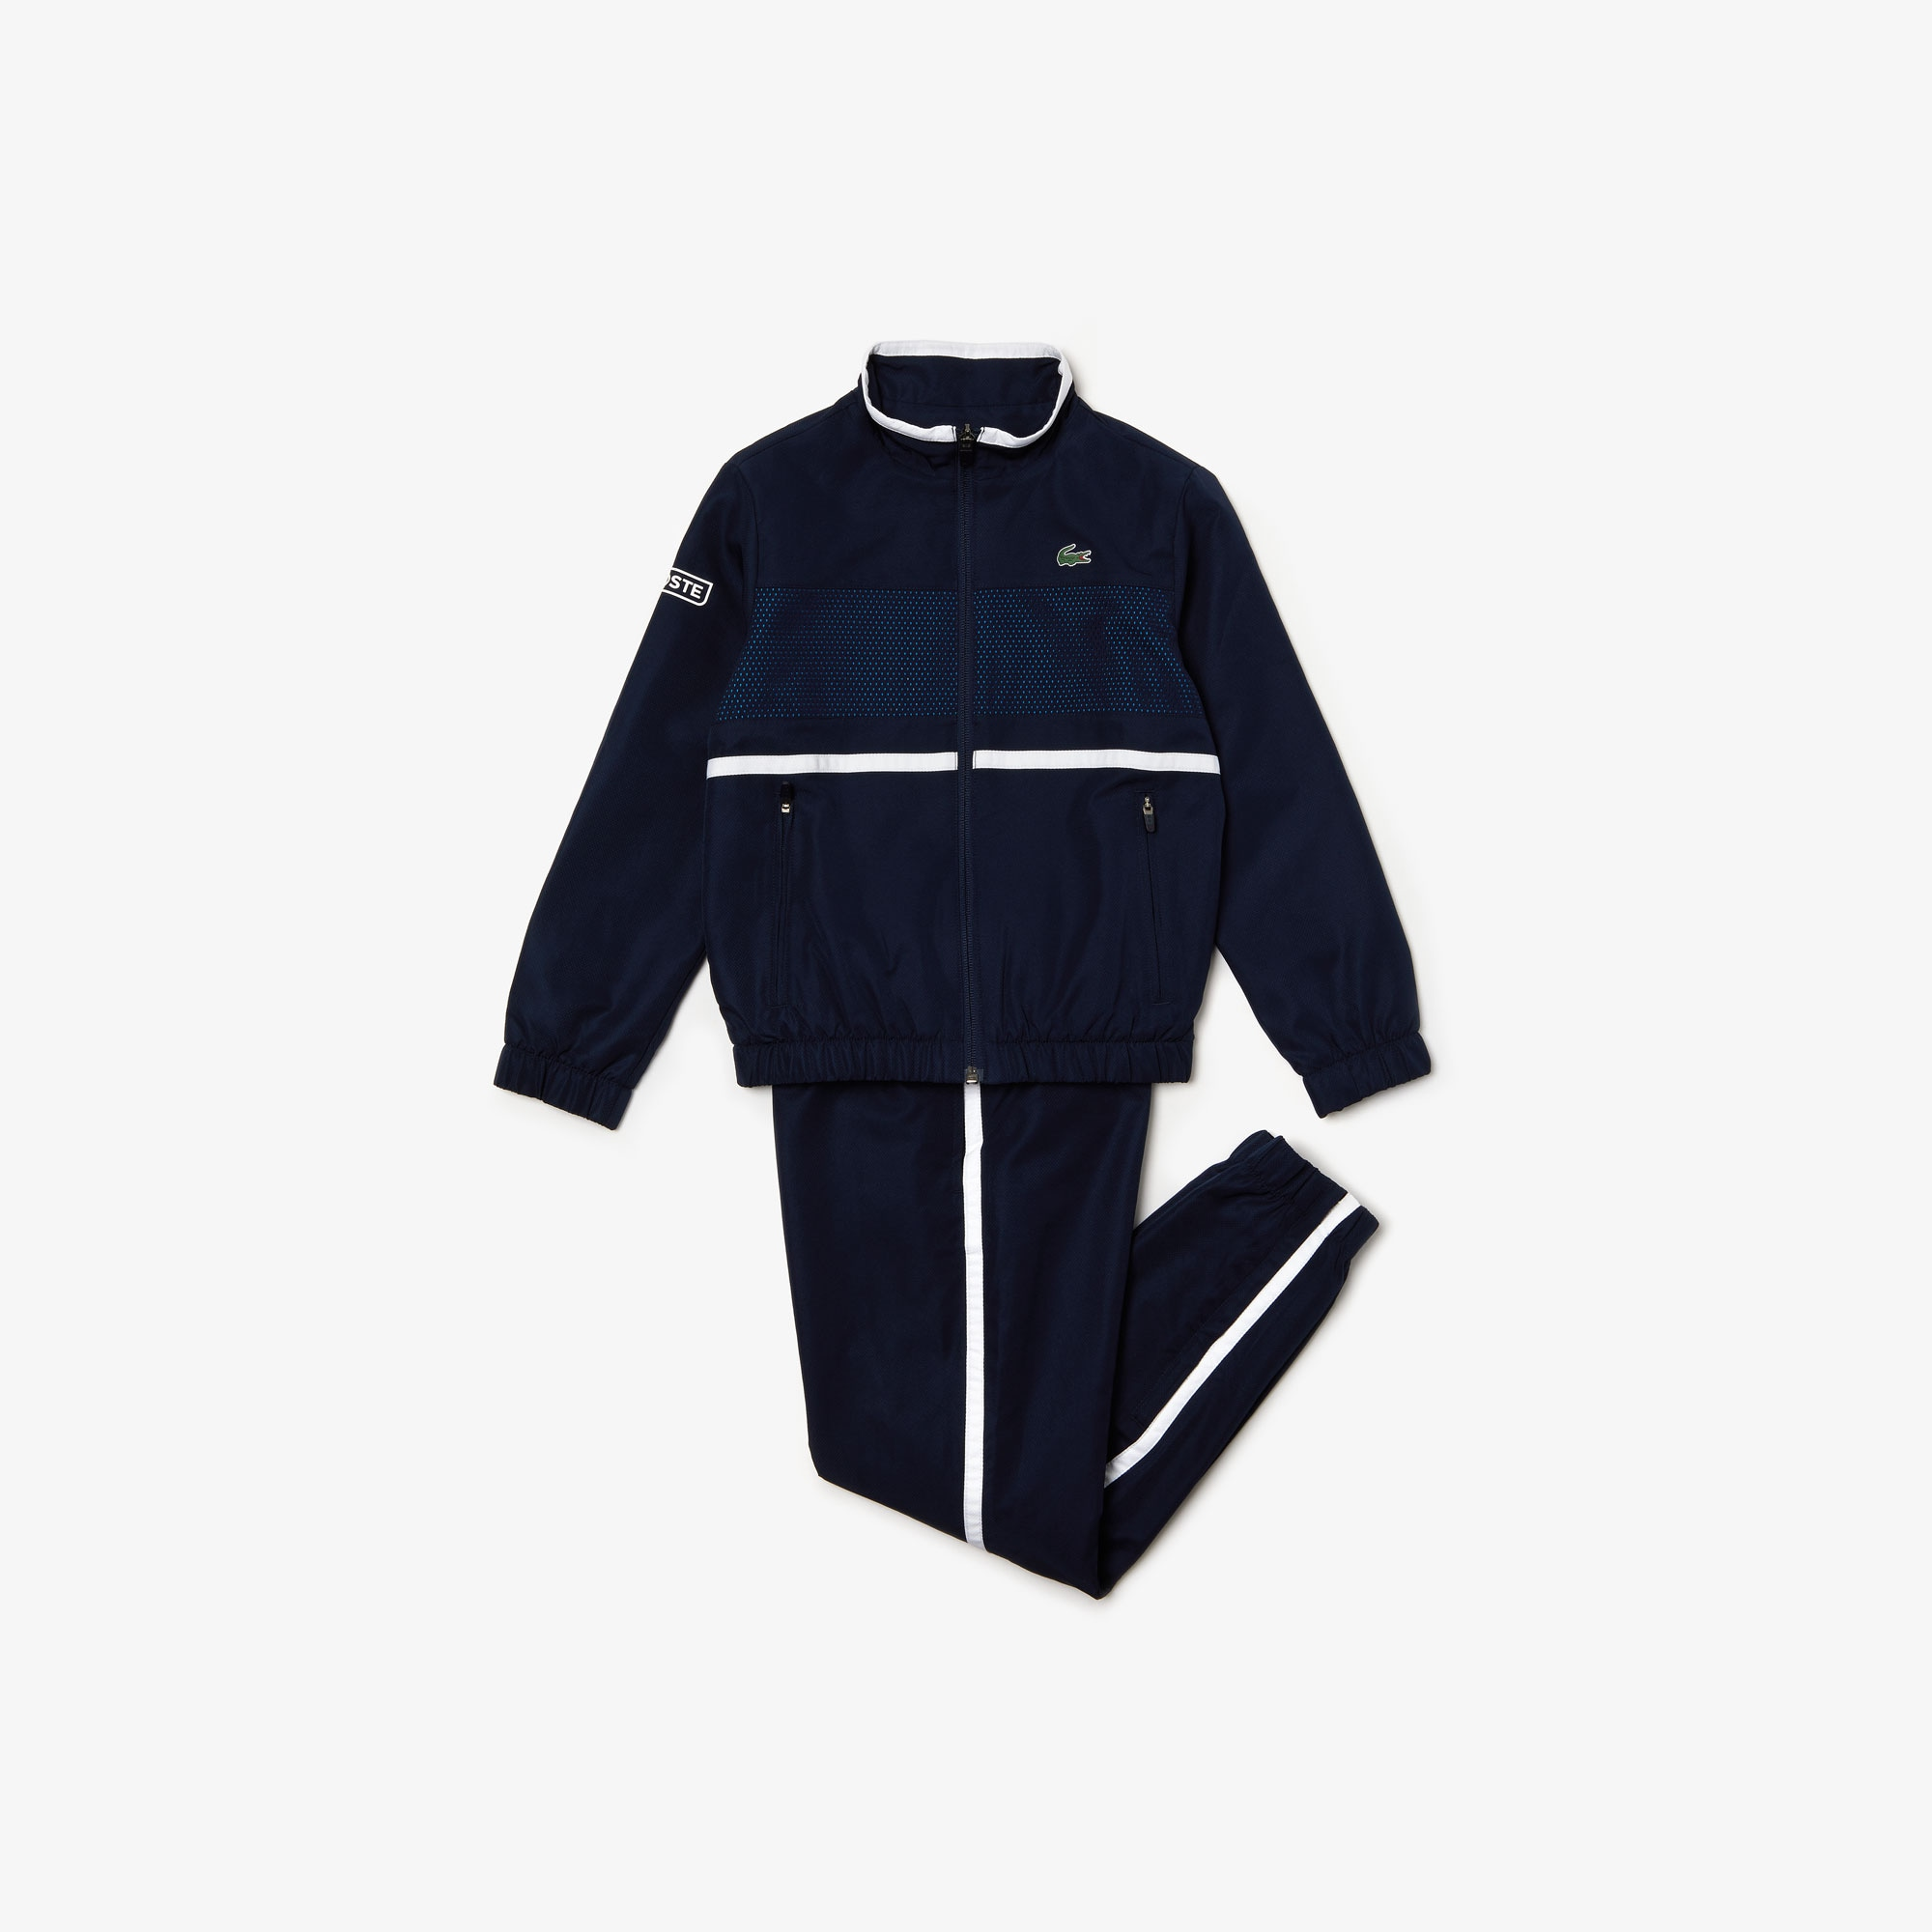 f700e39fa Kids tracksuits | Lacoste sport clothing for kids | LACOSTE